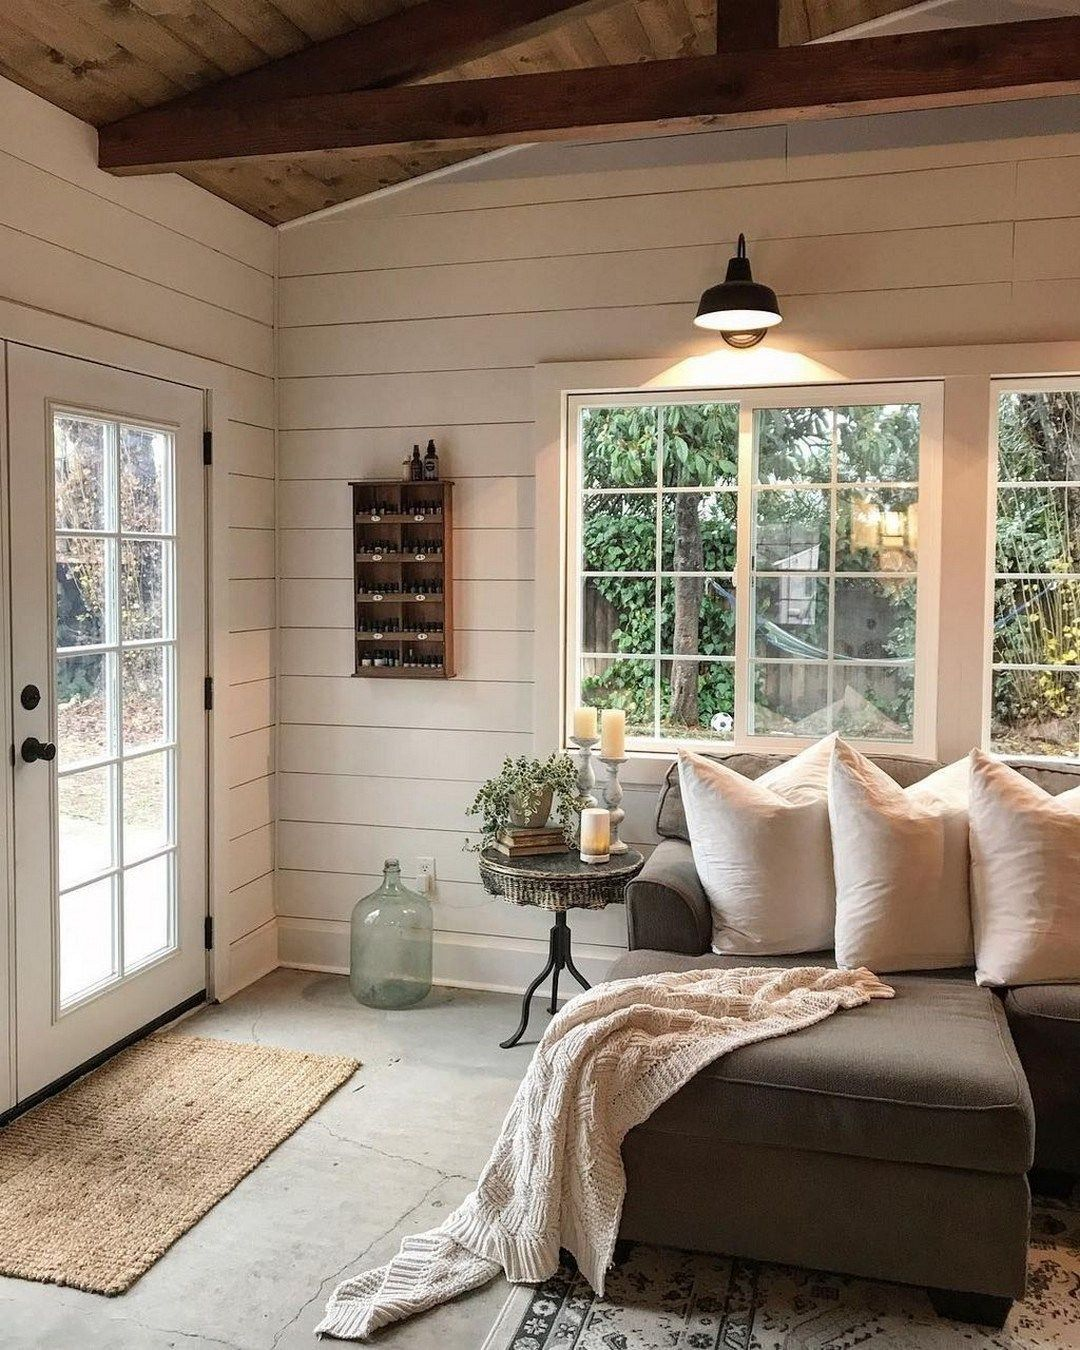 35 Cozy Home Interior Design Ideas: Cozy Modern Farmhouse Sunroom Design Ideas (6